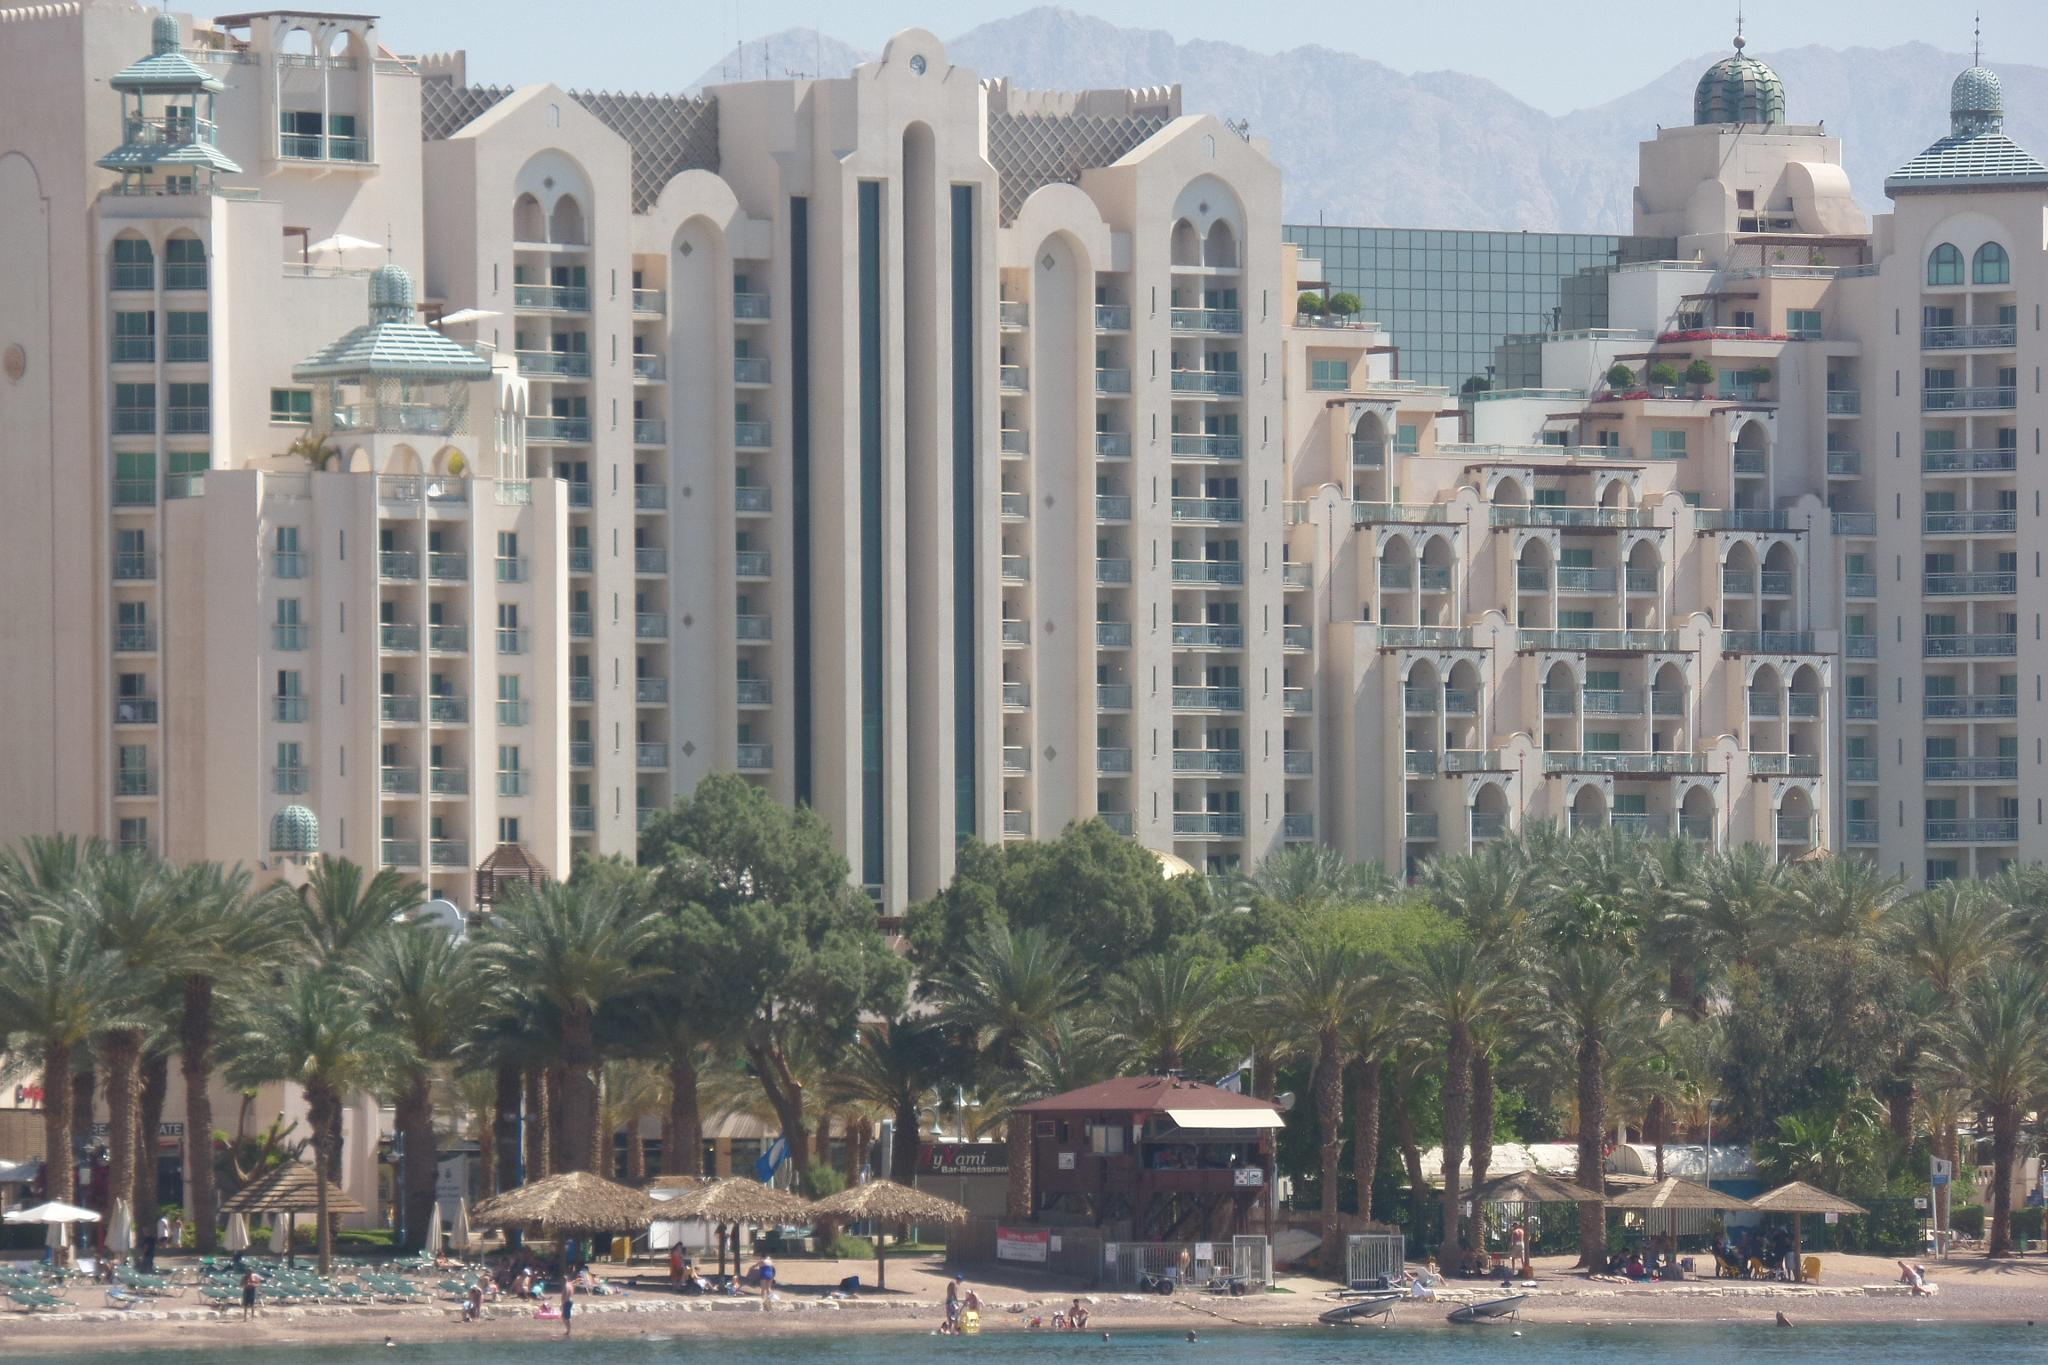 One of the luxury hotels in Eilat by Francine Waterman